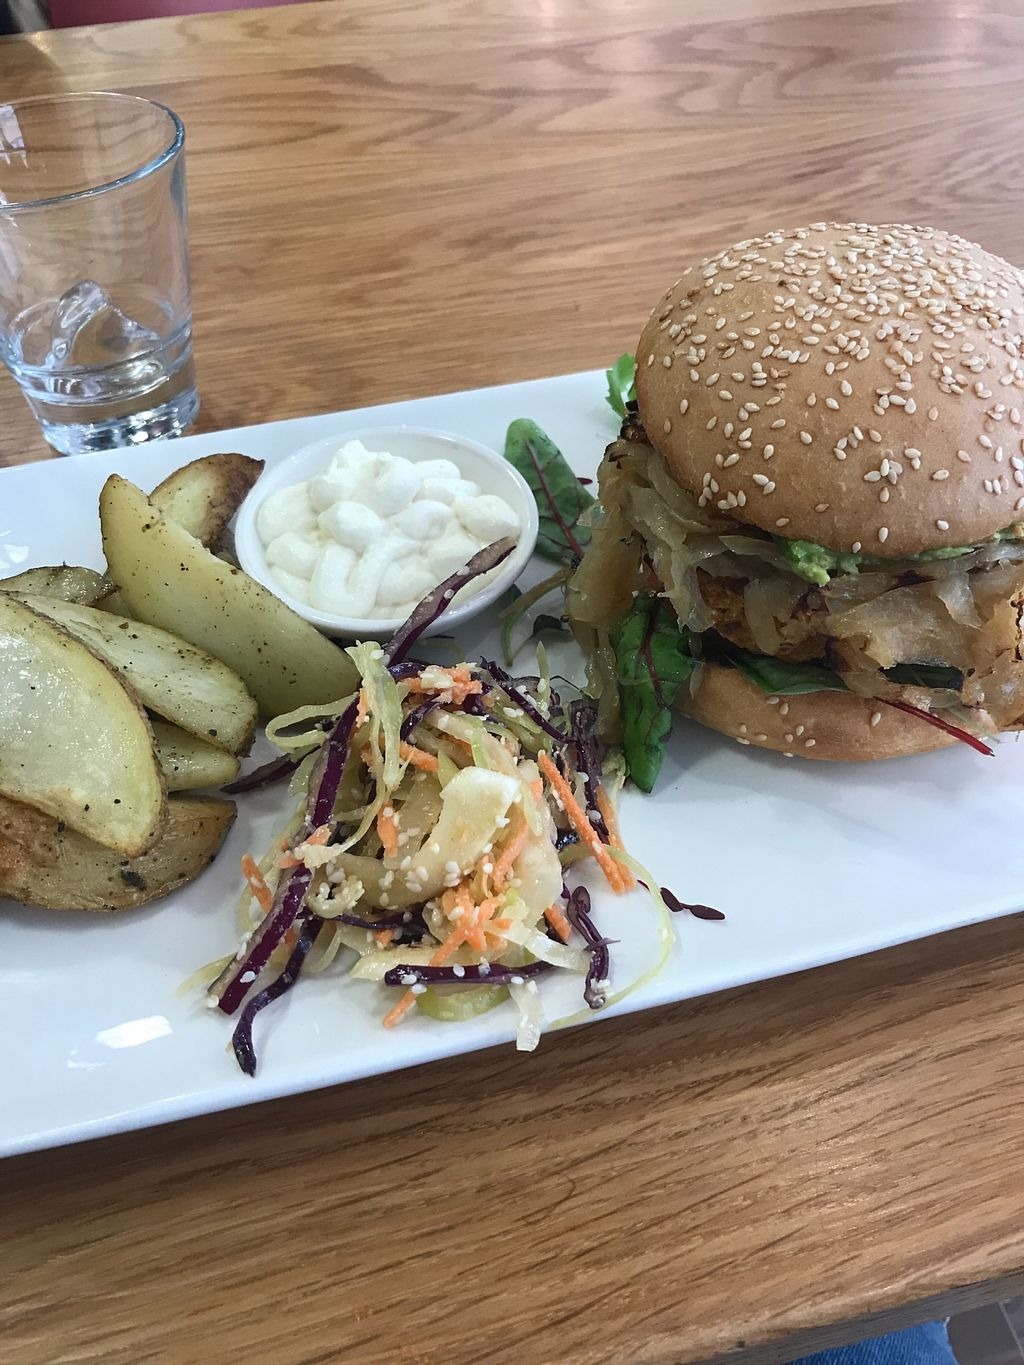 """Photo of Loudons Cafe and Bakery  by <a href=""""/members/profile/AshleighC"""">AshleighC</a> <br/>Loudons veggie burger <br/> February 5, 2018  - <a href='/contact/abuse/image/105784/355401'>Report</a>"""